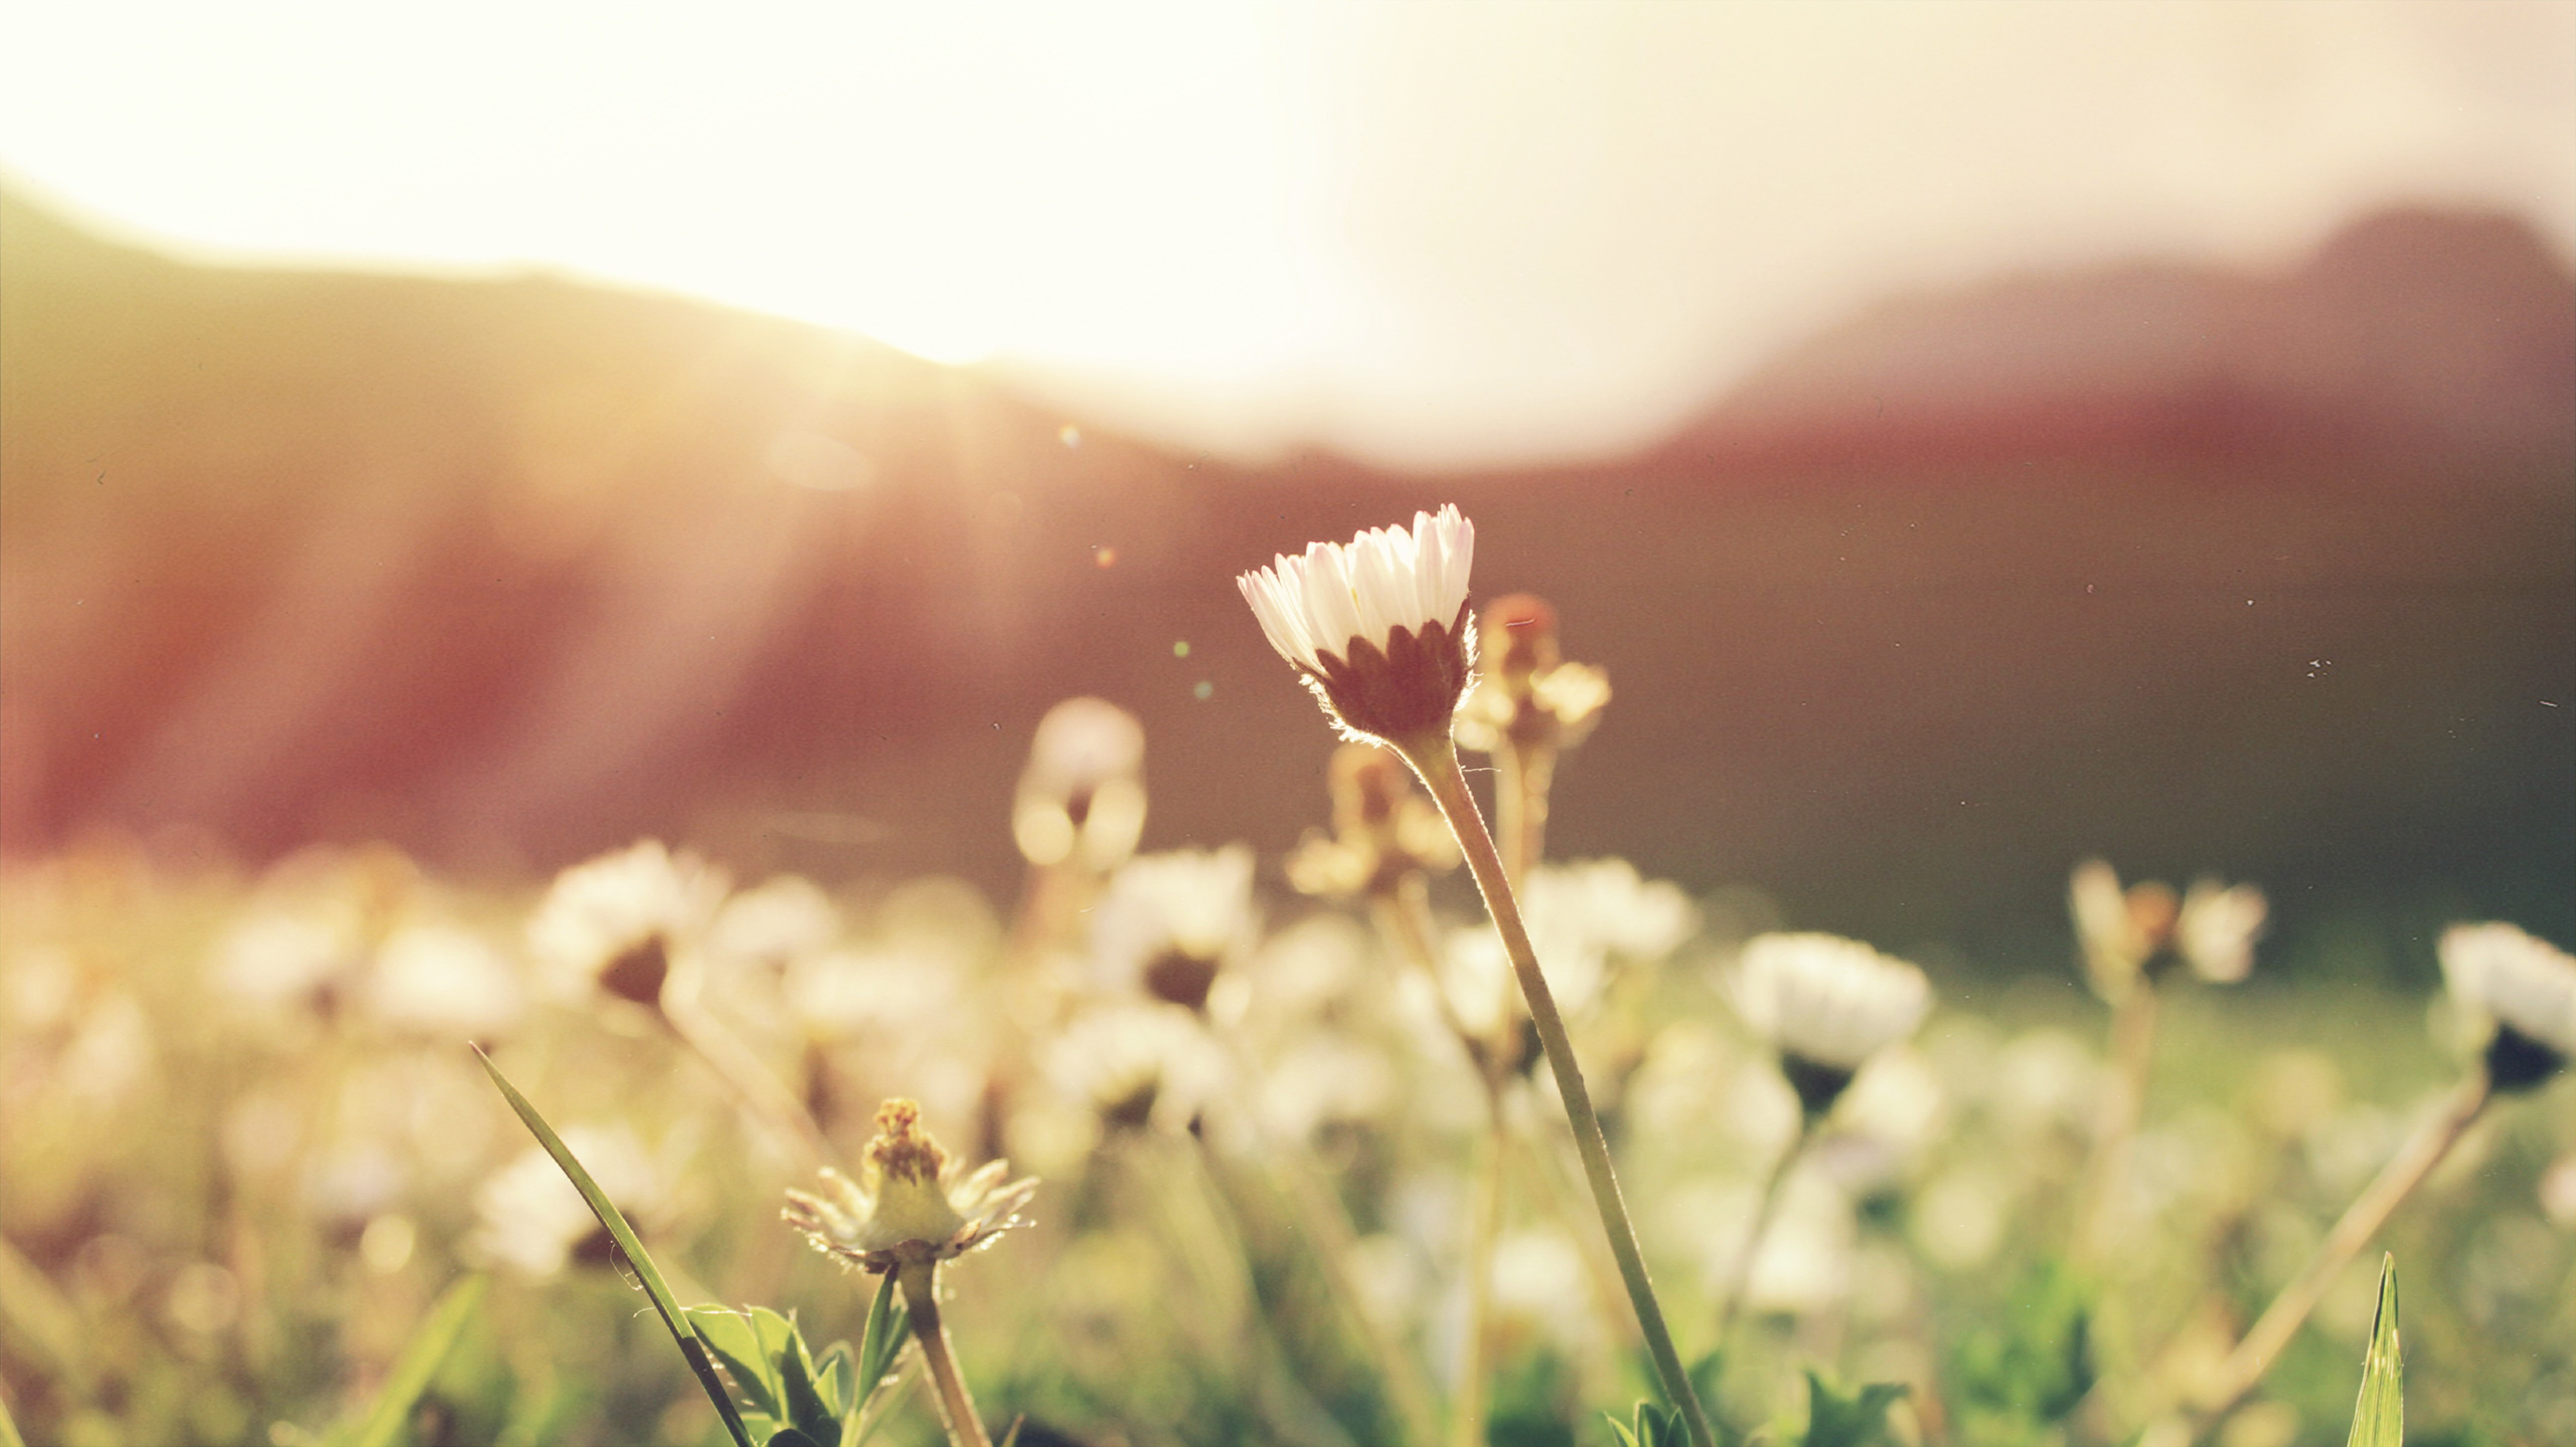 Daisy flowers growing at sunrise in meadow in Spring